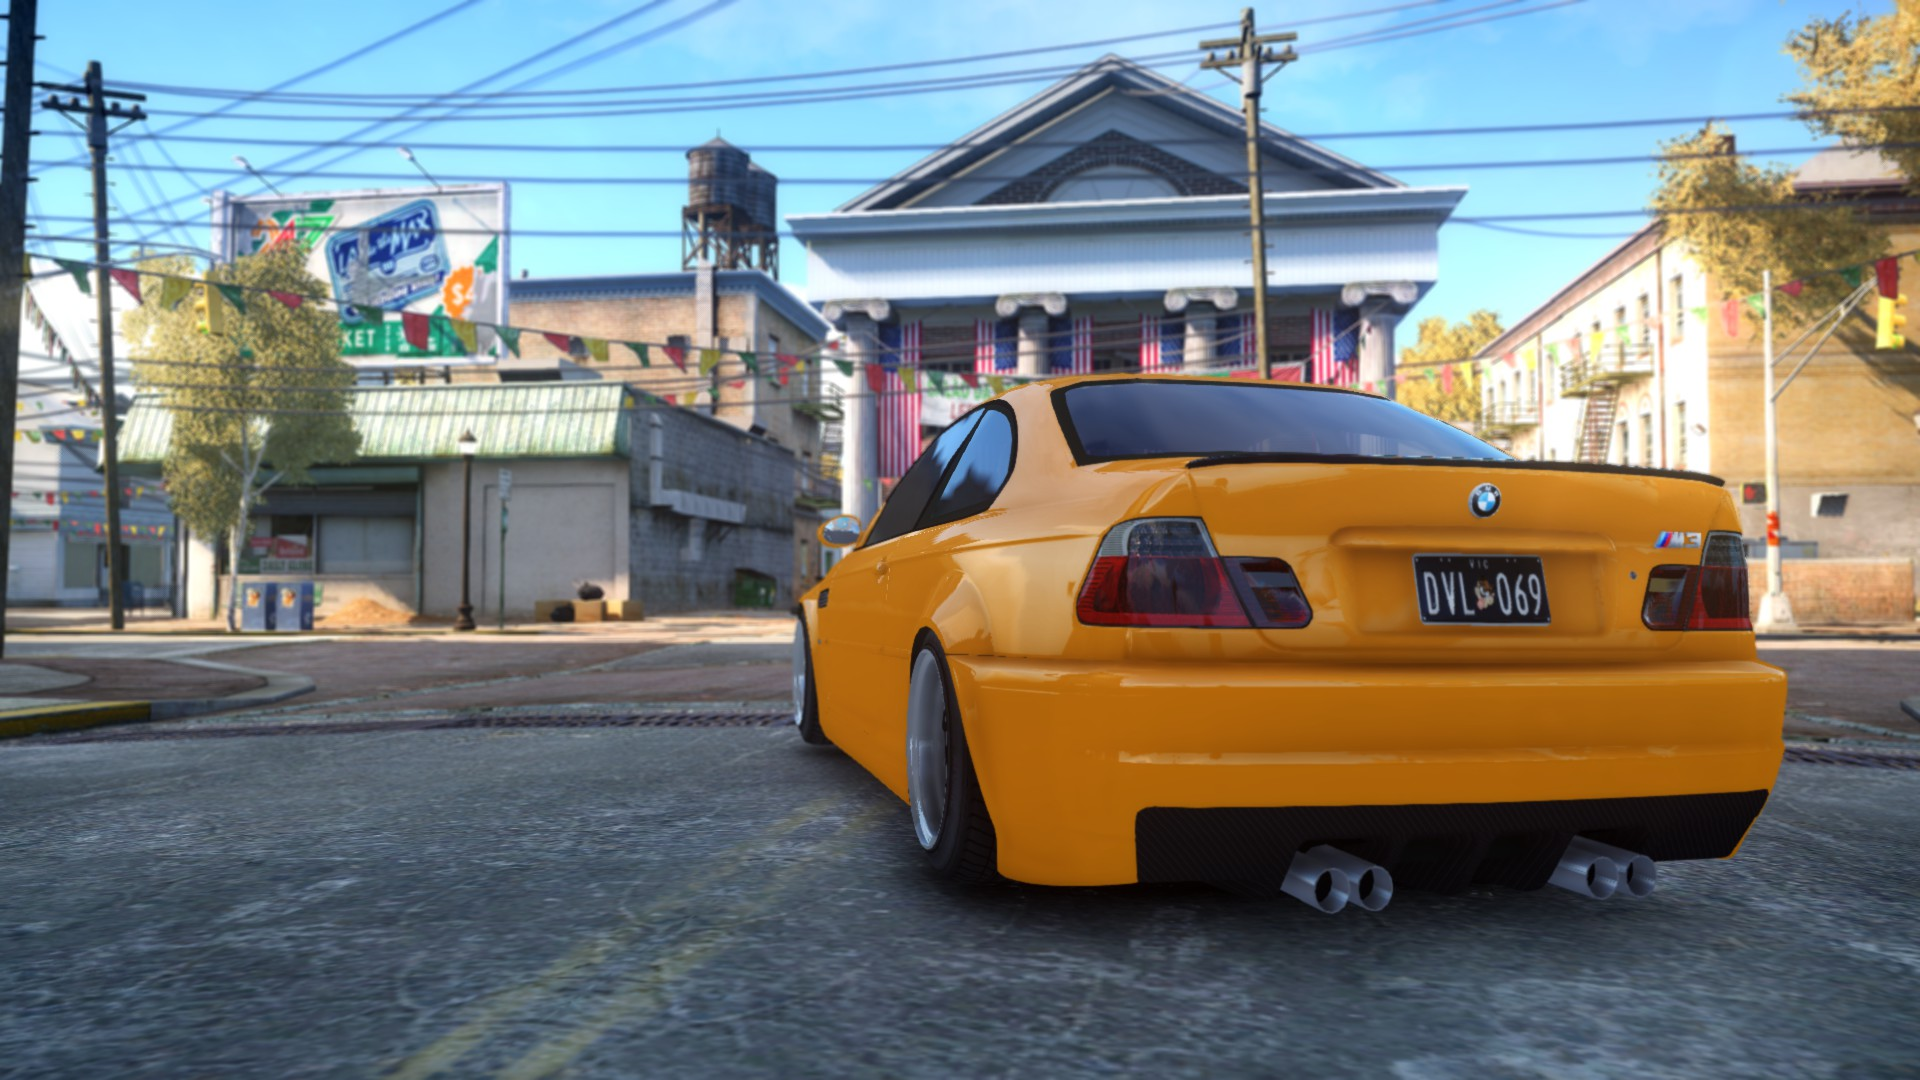 performance install the gtr nfsmods allows race upgrades in mod to nfs bmw this carbon you upgradeable mods